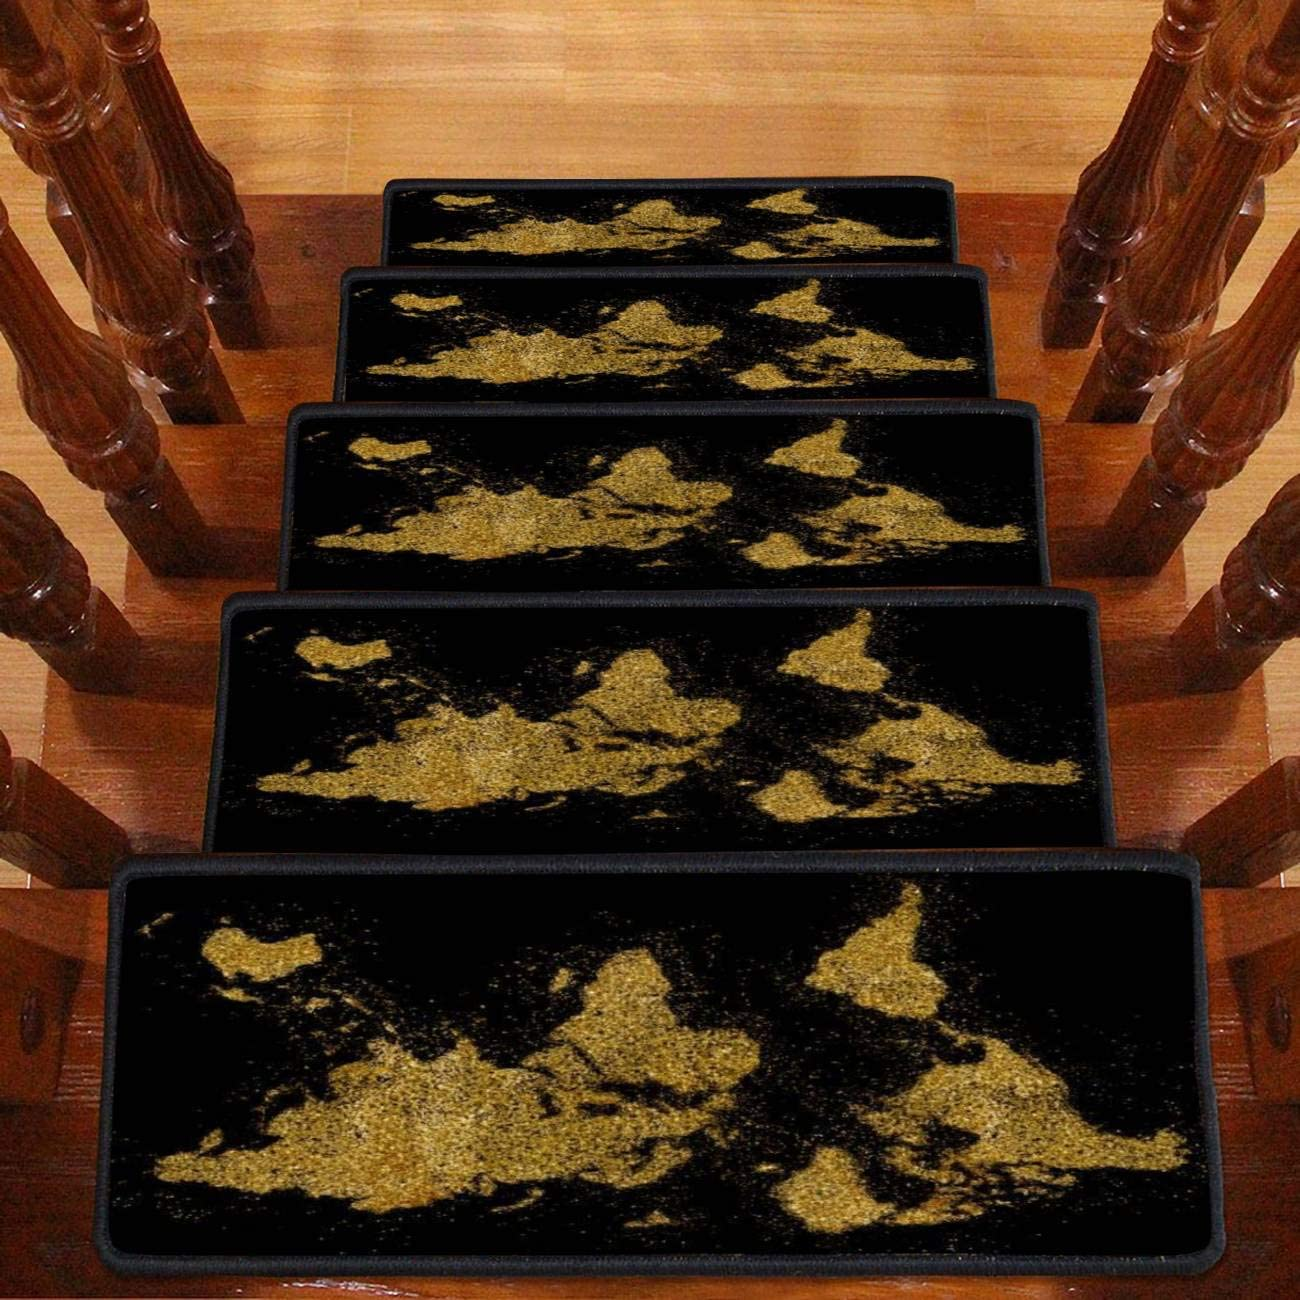 The World Shaped from Golden outlet Glitter Stai Carpet Black on Max 90% OFF Series